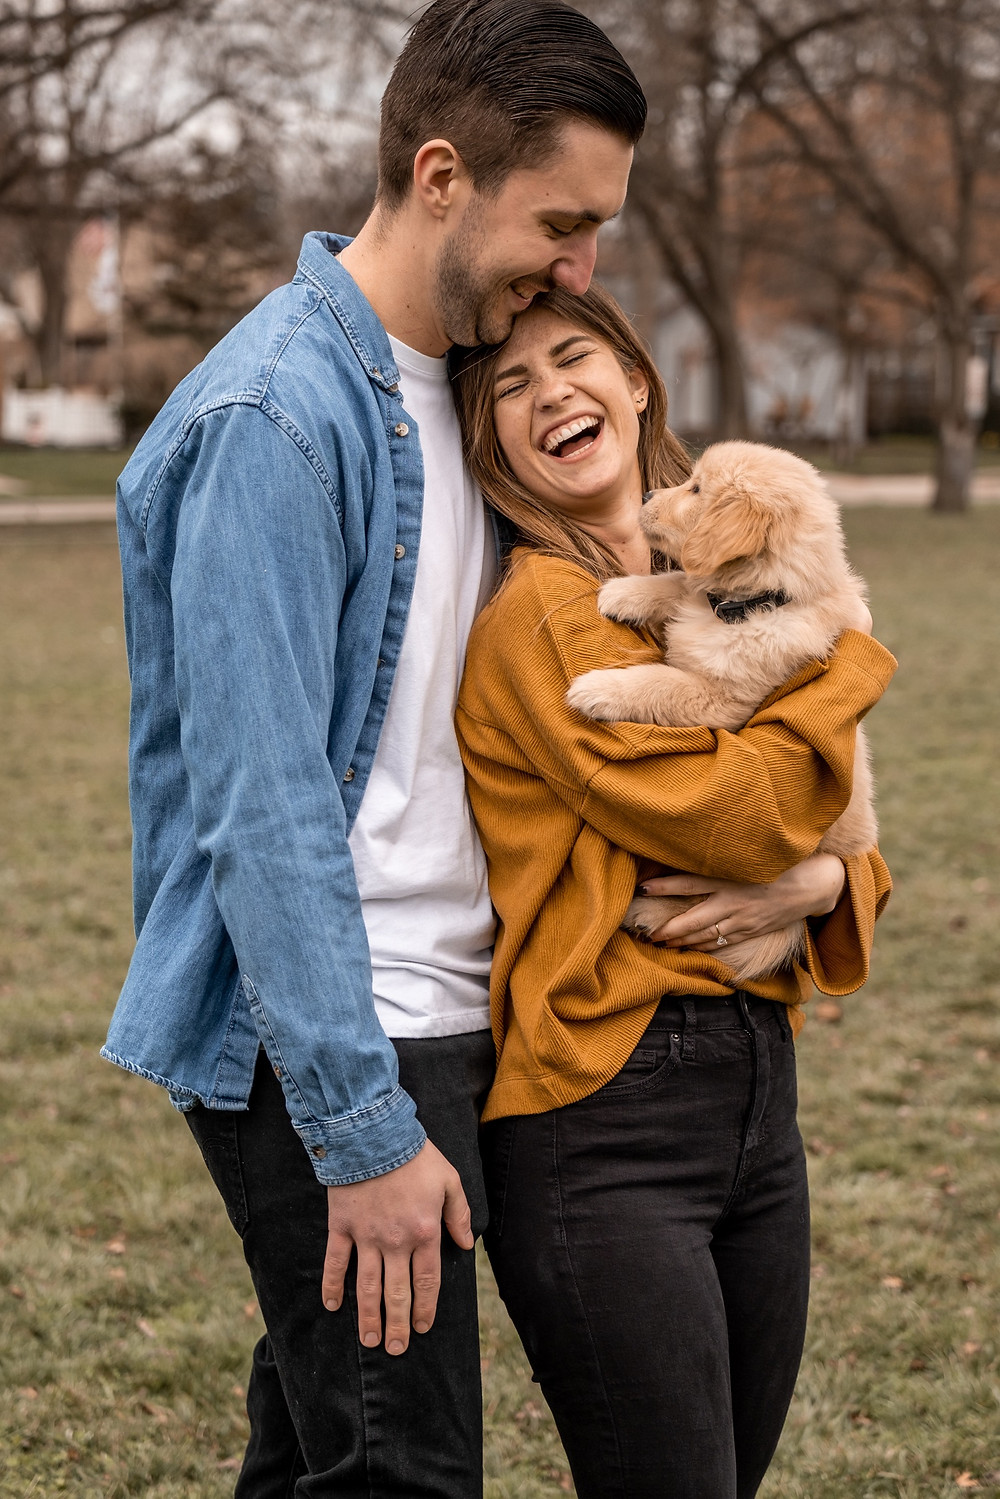 Couple holding puppy at park after proposal in Royal Oak Michigan. Photographed by Nicole Leanne Photography